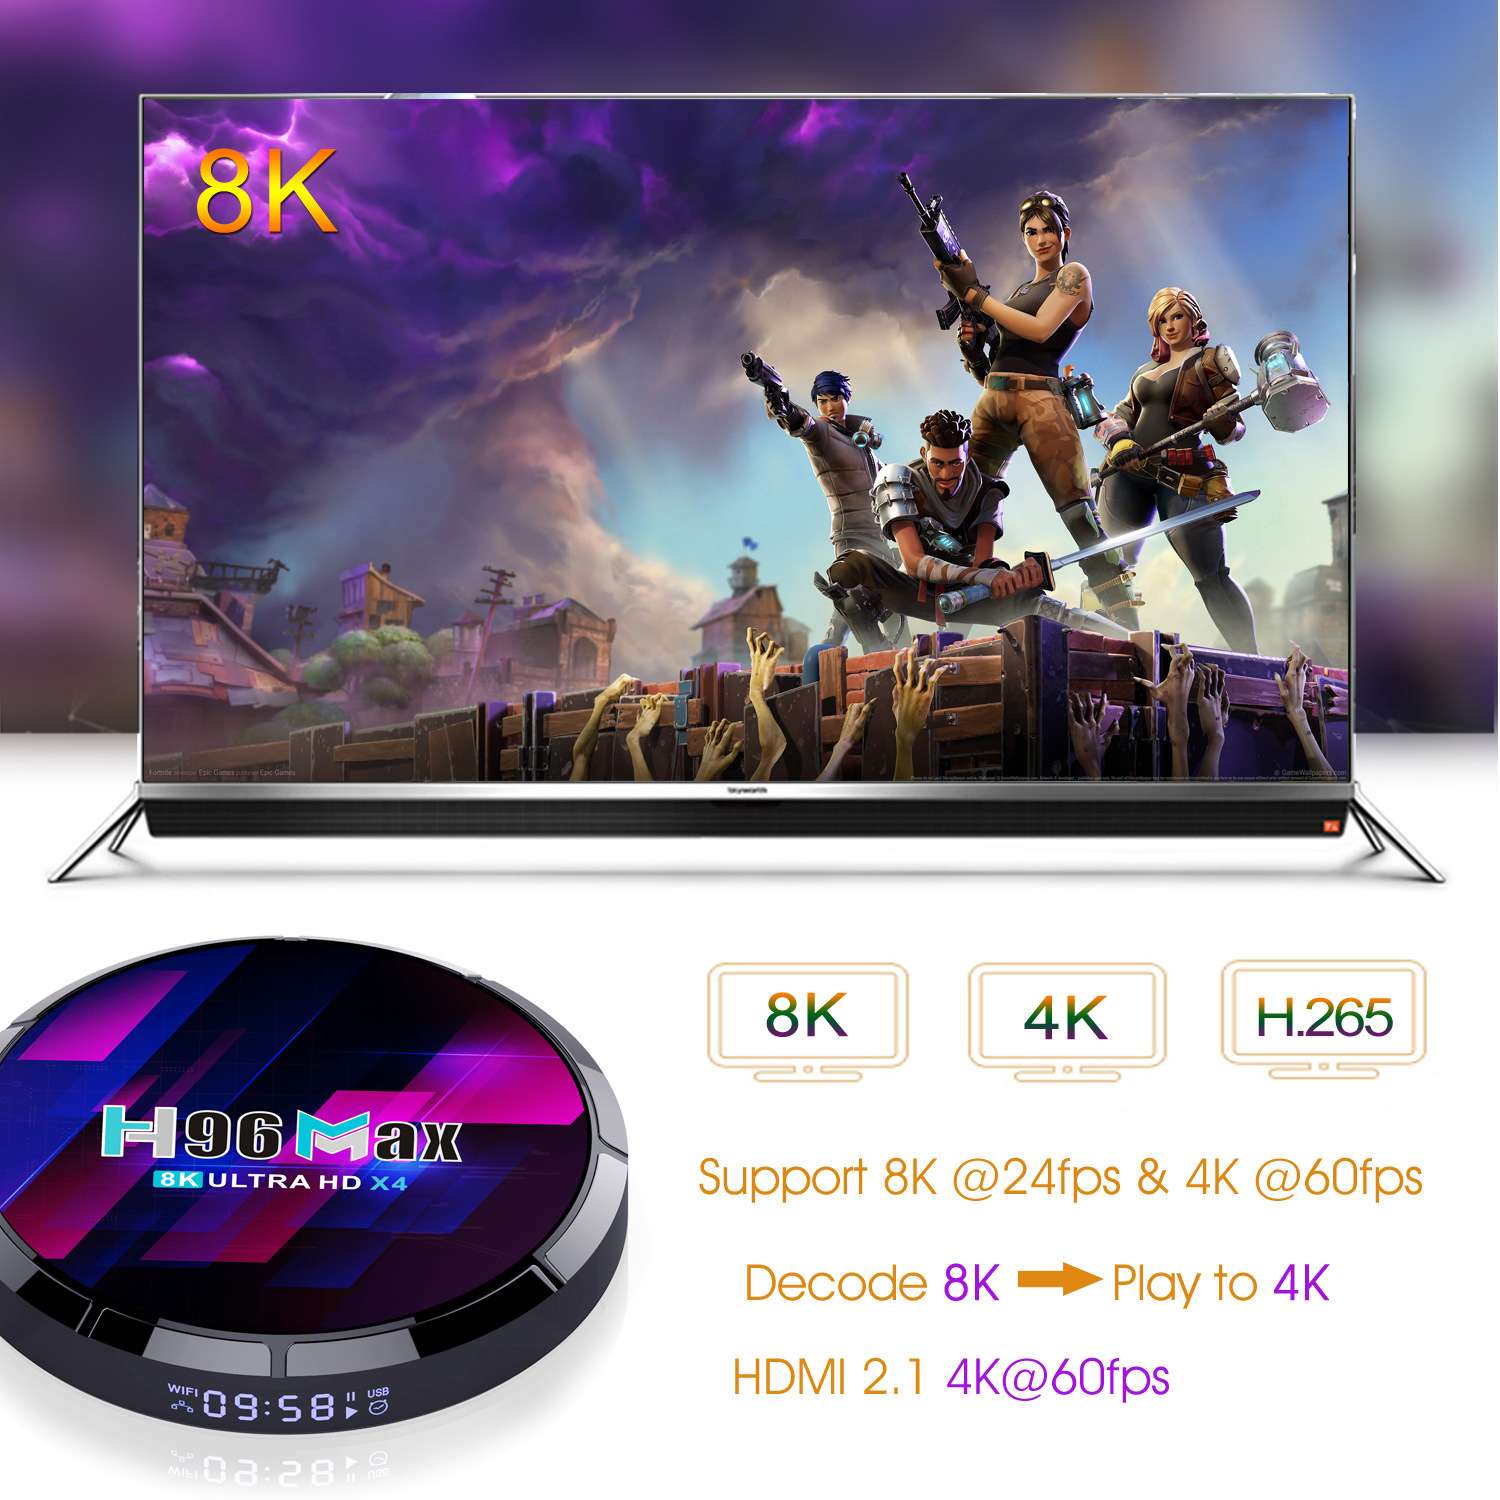 2021 New H96 Max S905X4 Tv Box Android 10.0 4G+64G 8K Network Player 3